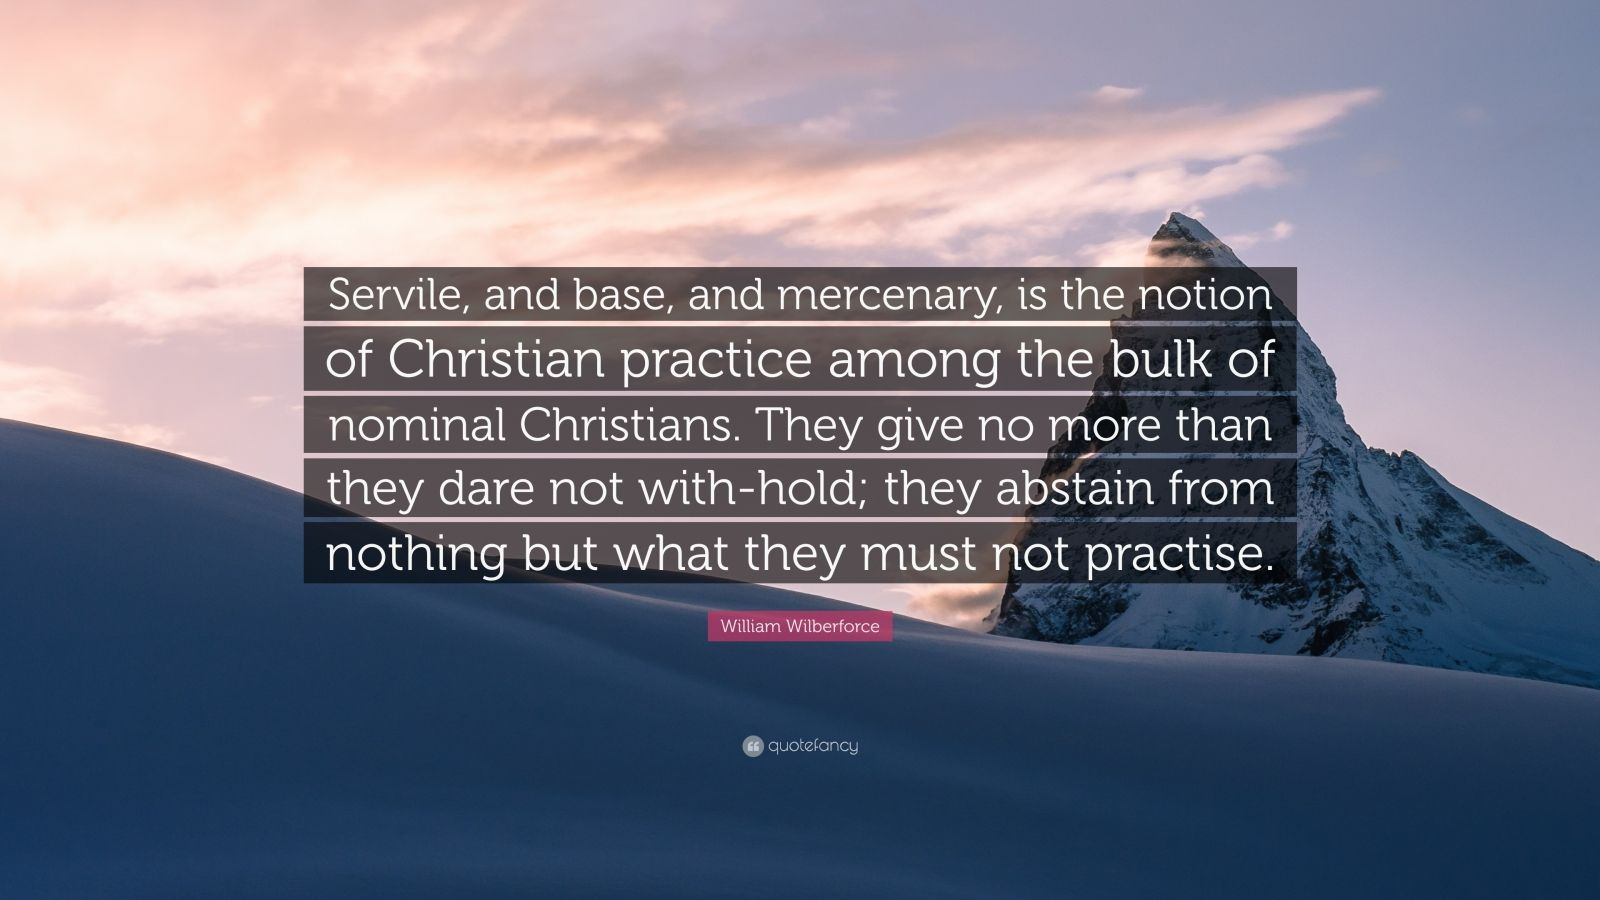 "William Wilberforce Quote: ""Servile, and base, and mercenary, is the notion of Christian practice among the bulk of nominal Christians. They give no more than they dare not with-hold; they abstain from nothing but what they must not practise."""